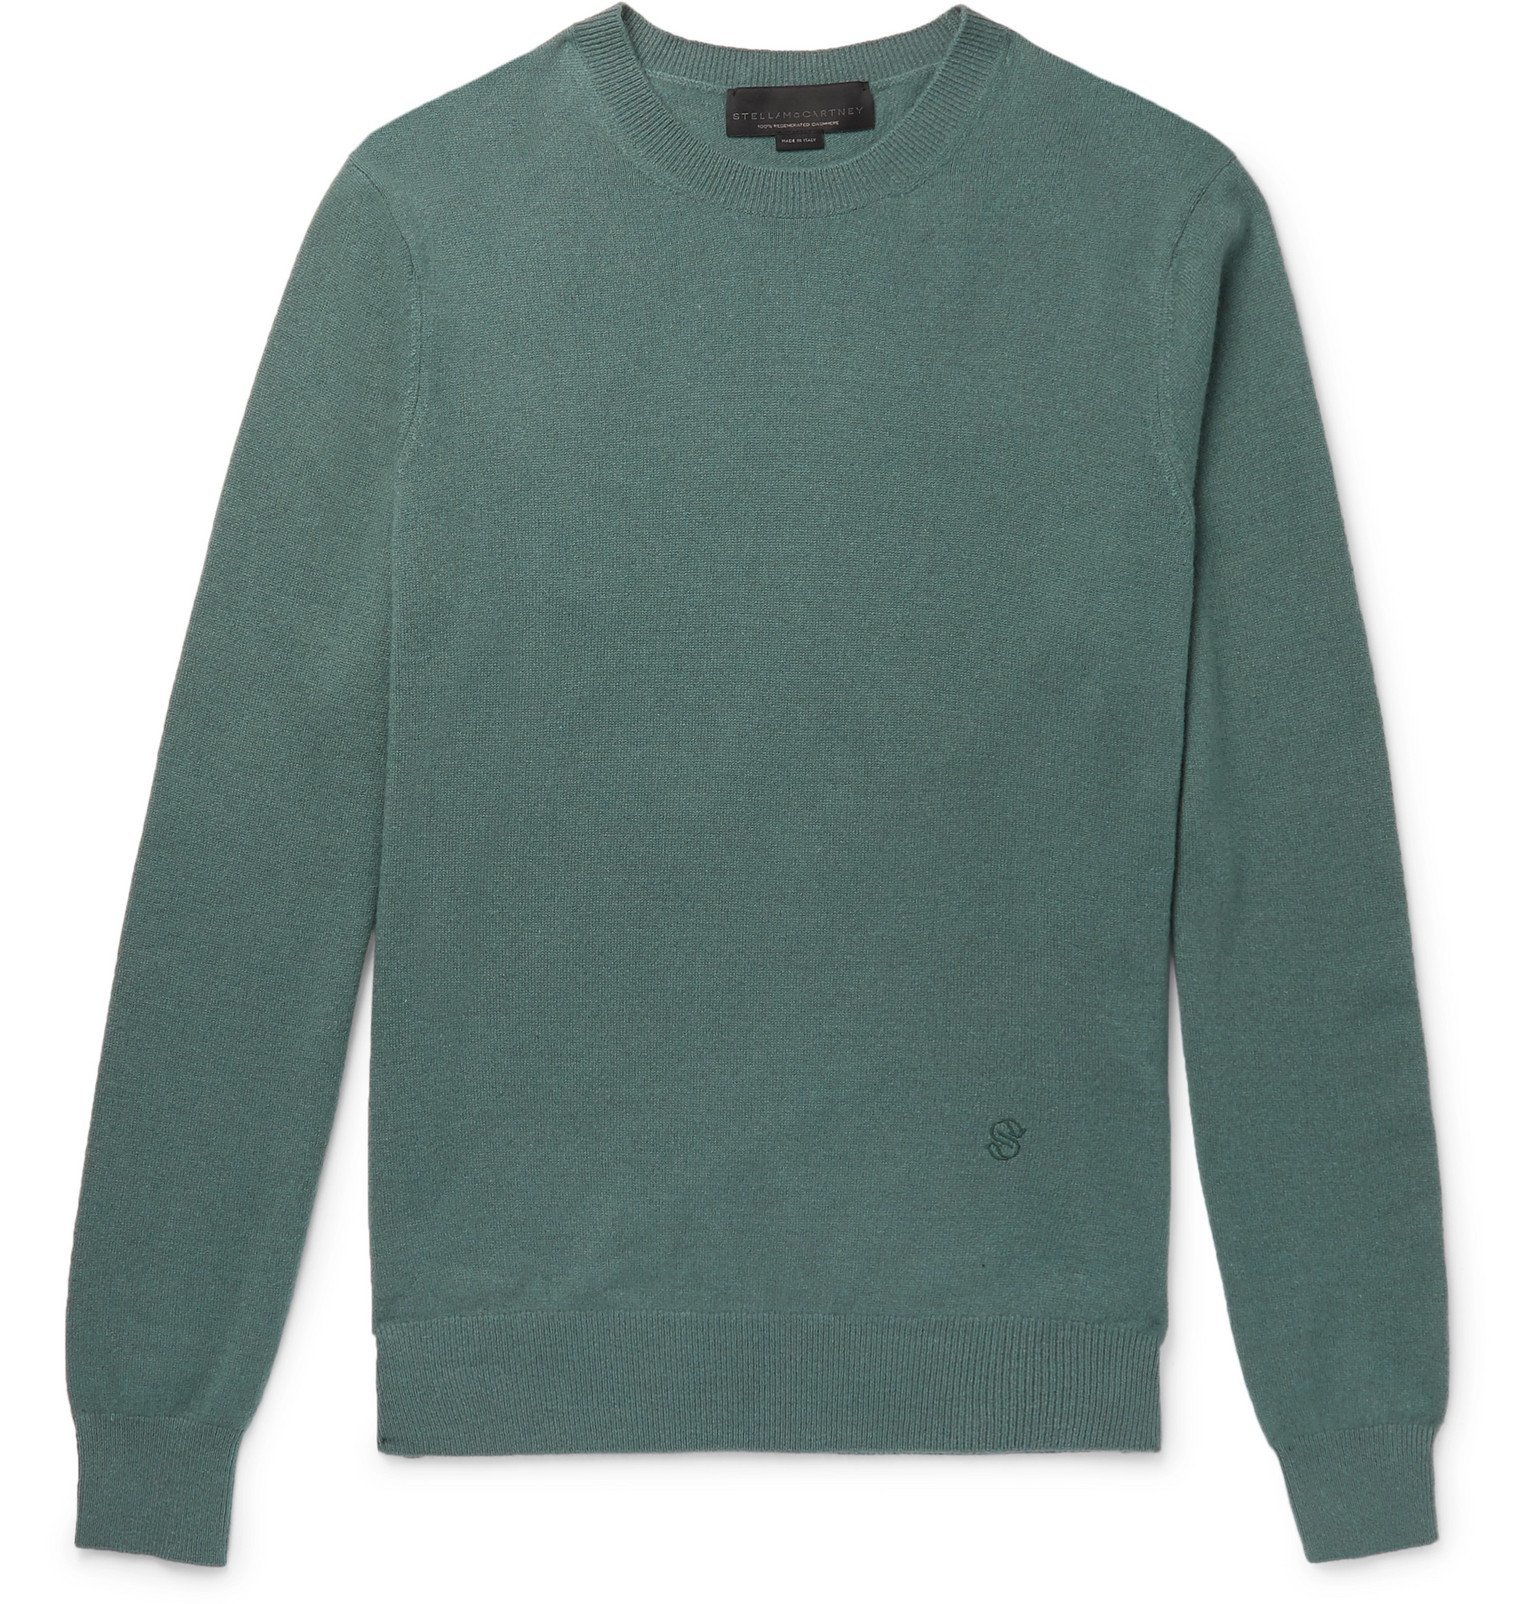 Stella McCartney - Cashmere and Wool-Blend Sweater - Green